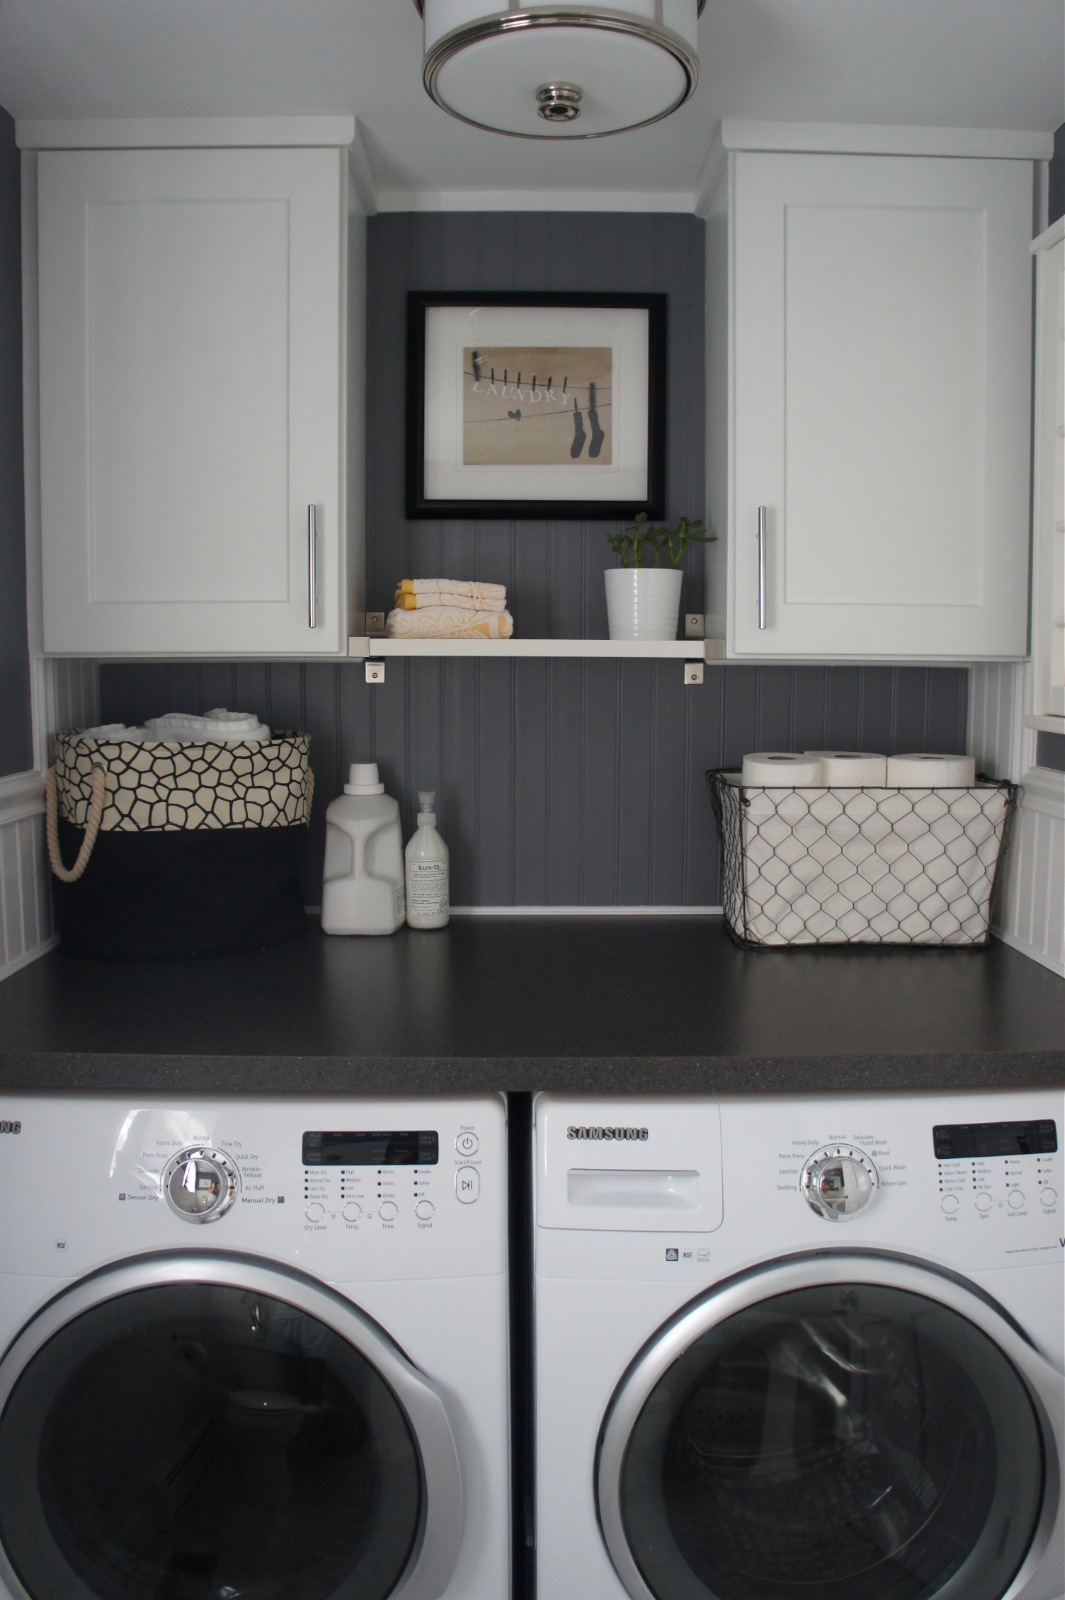 Pictures Of Laundry Rooms Home With Baxter: House Tour - Week 5 - Half Bath/laundry